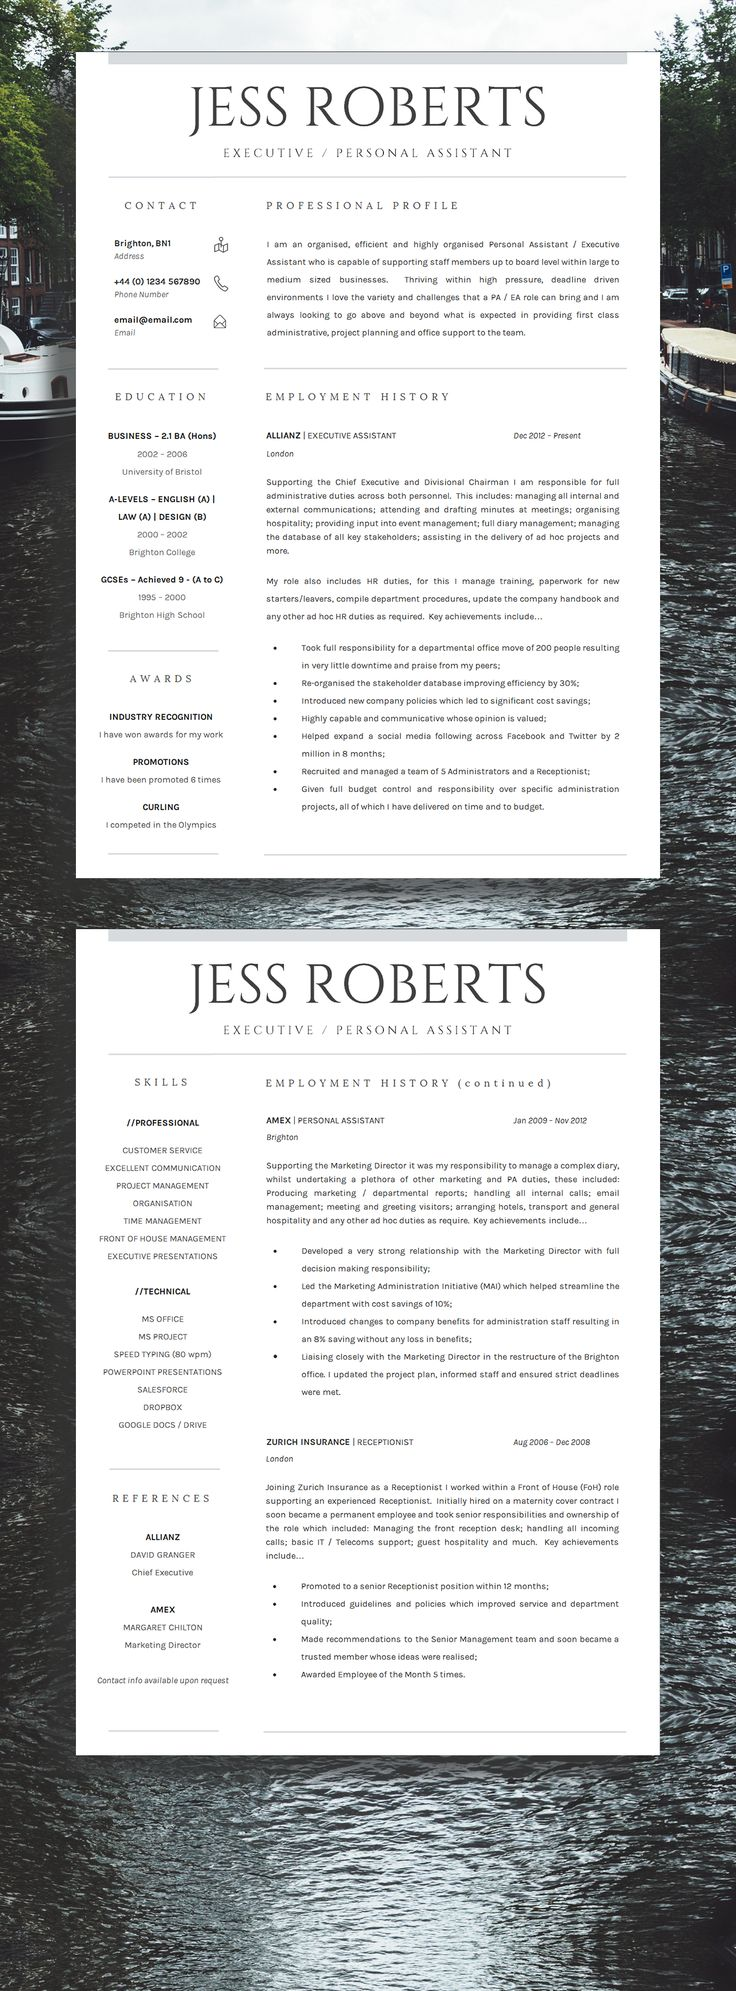 best ideas about professional resume design cv professional curriculum vitae professional cv resume template for ms word cover letter mac or pc newgate